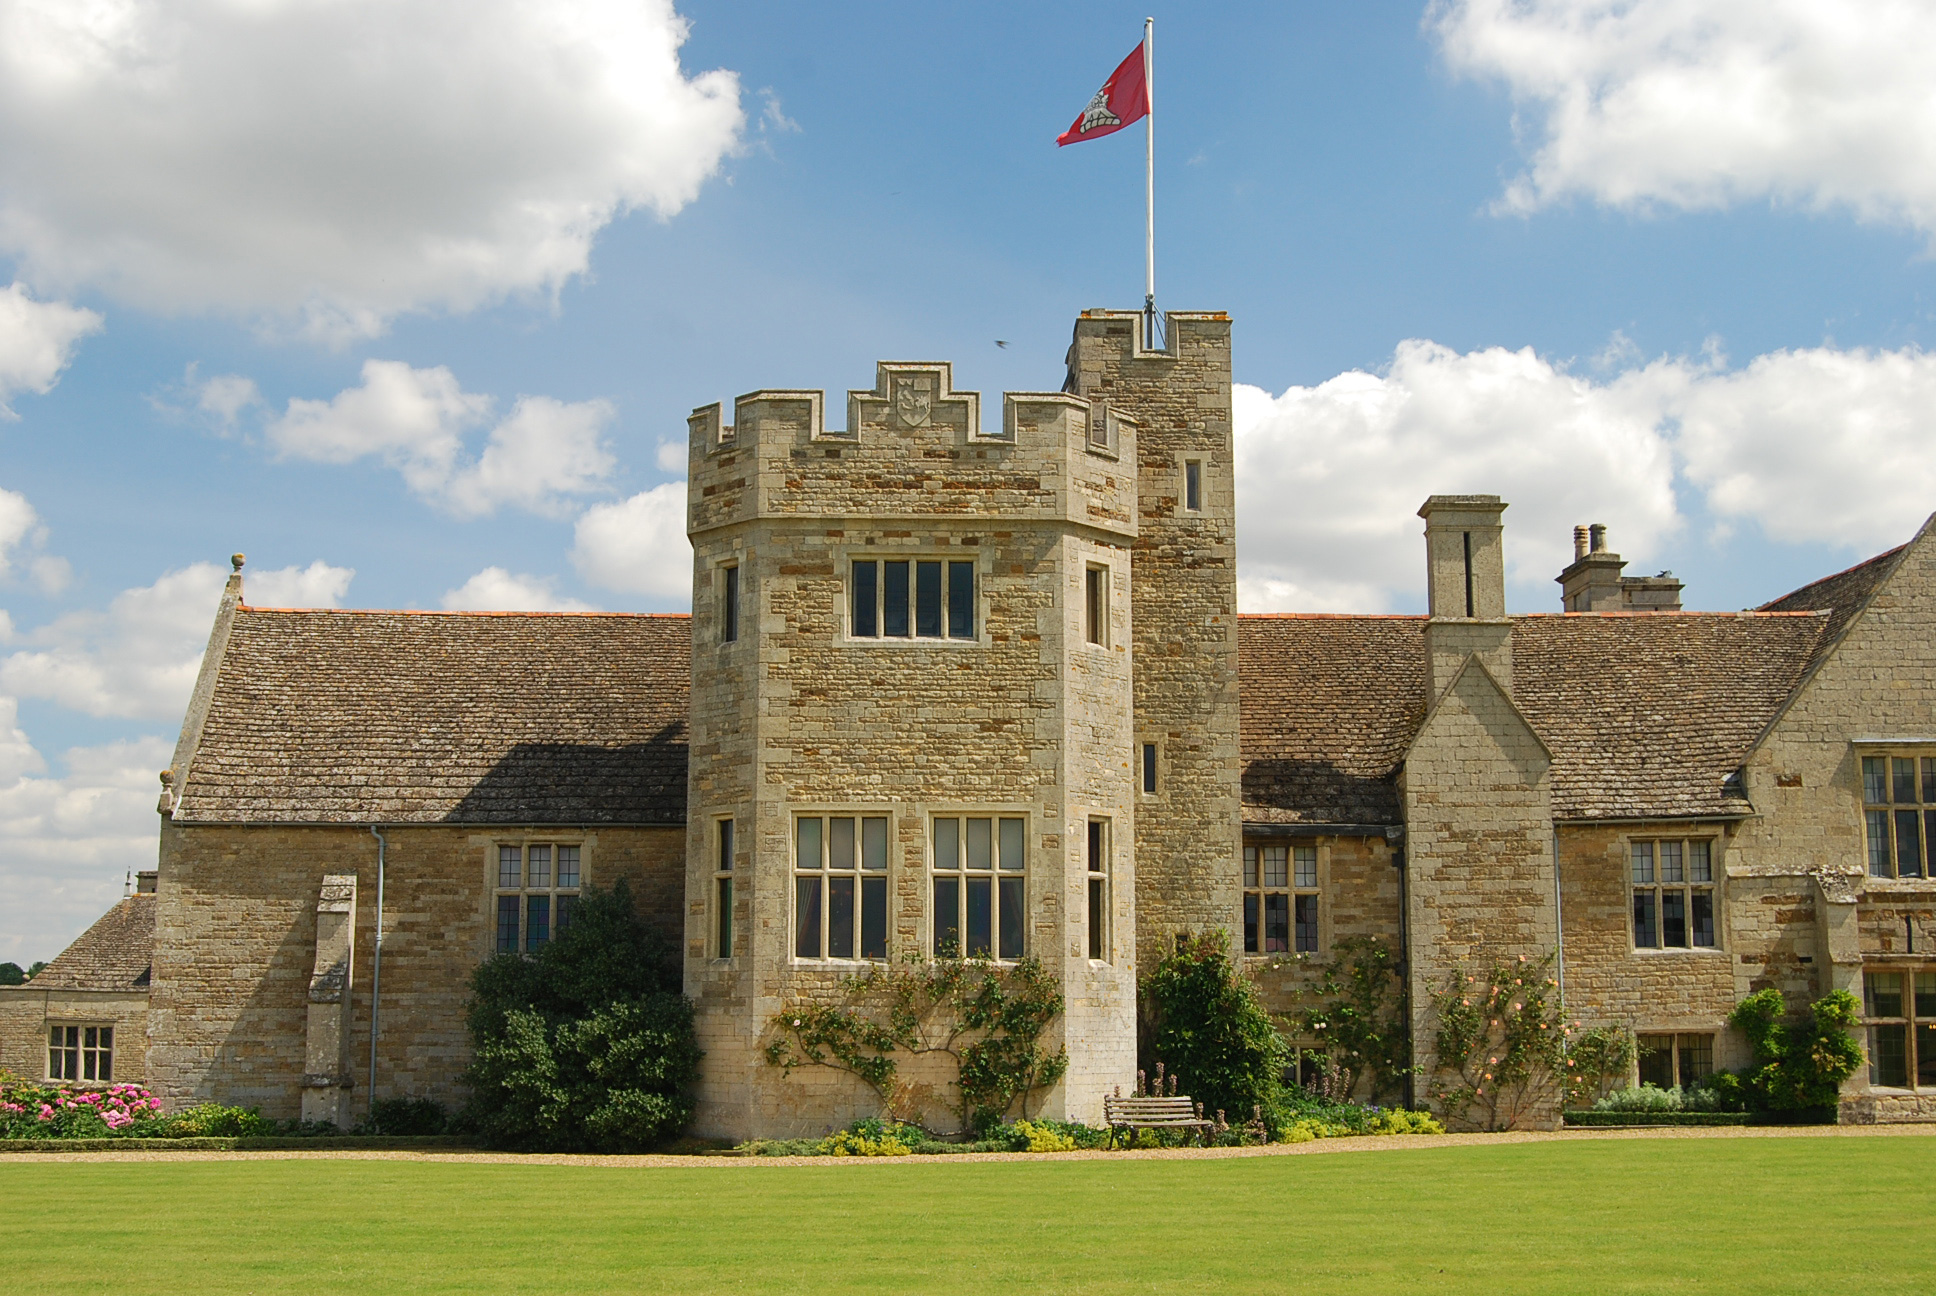 Great Castles - Gallery - Rockingham Castle - Northamptonshire England